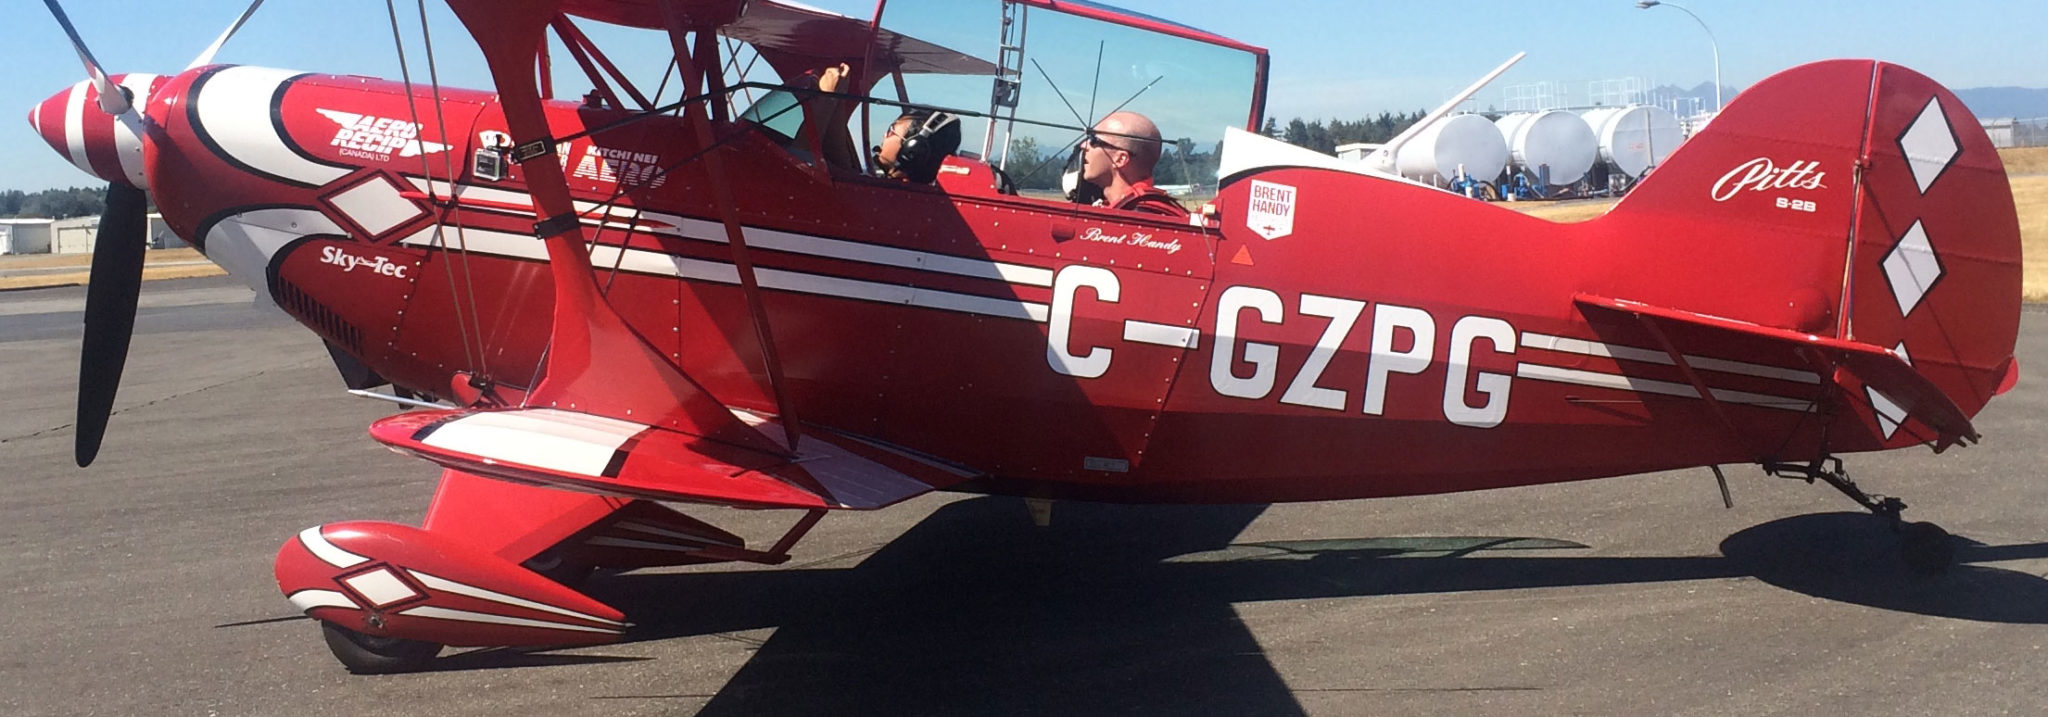 pitts_classic_header